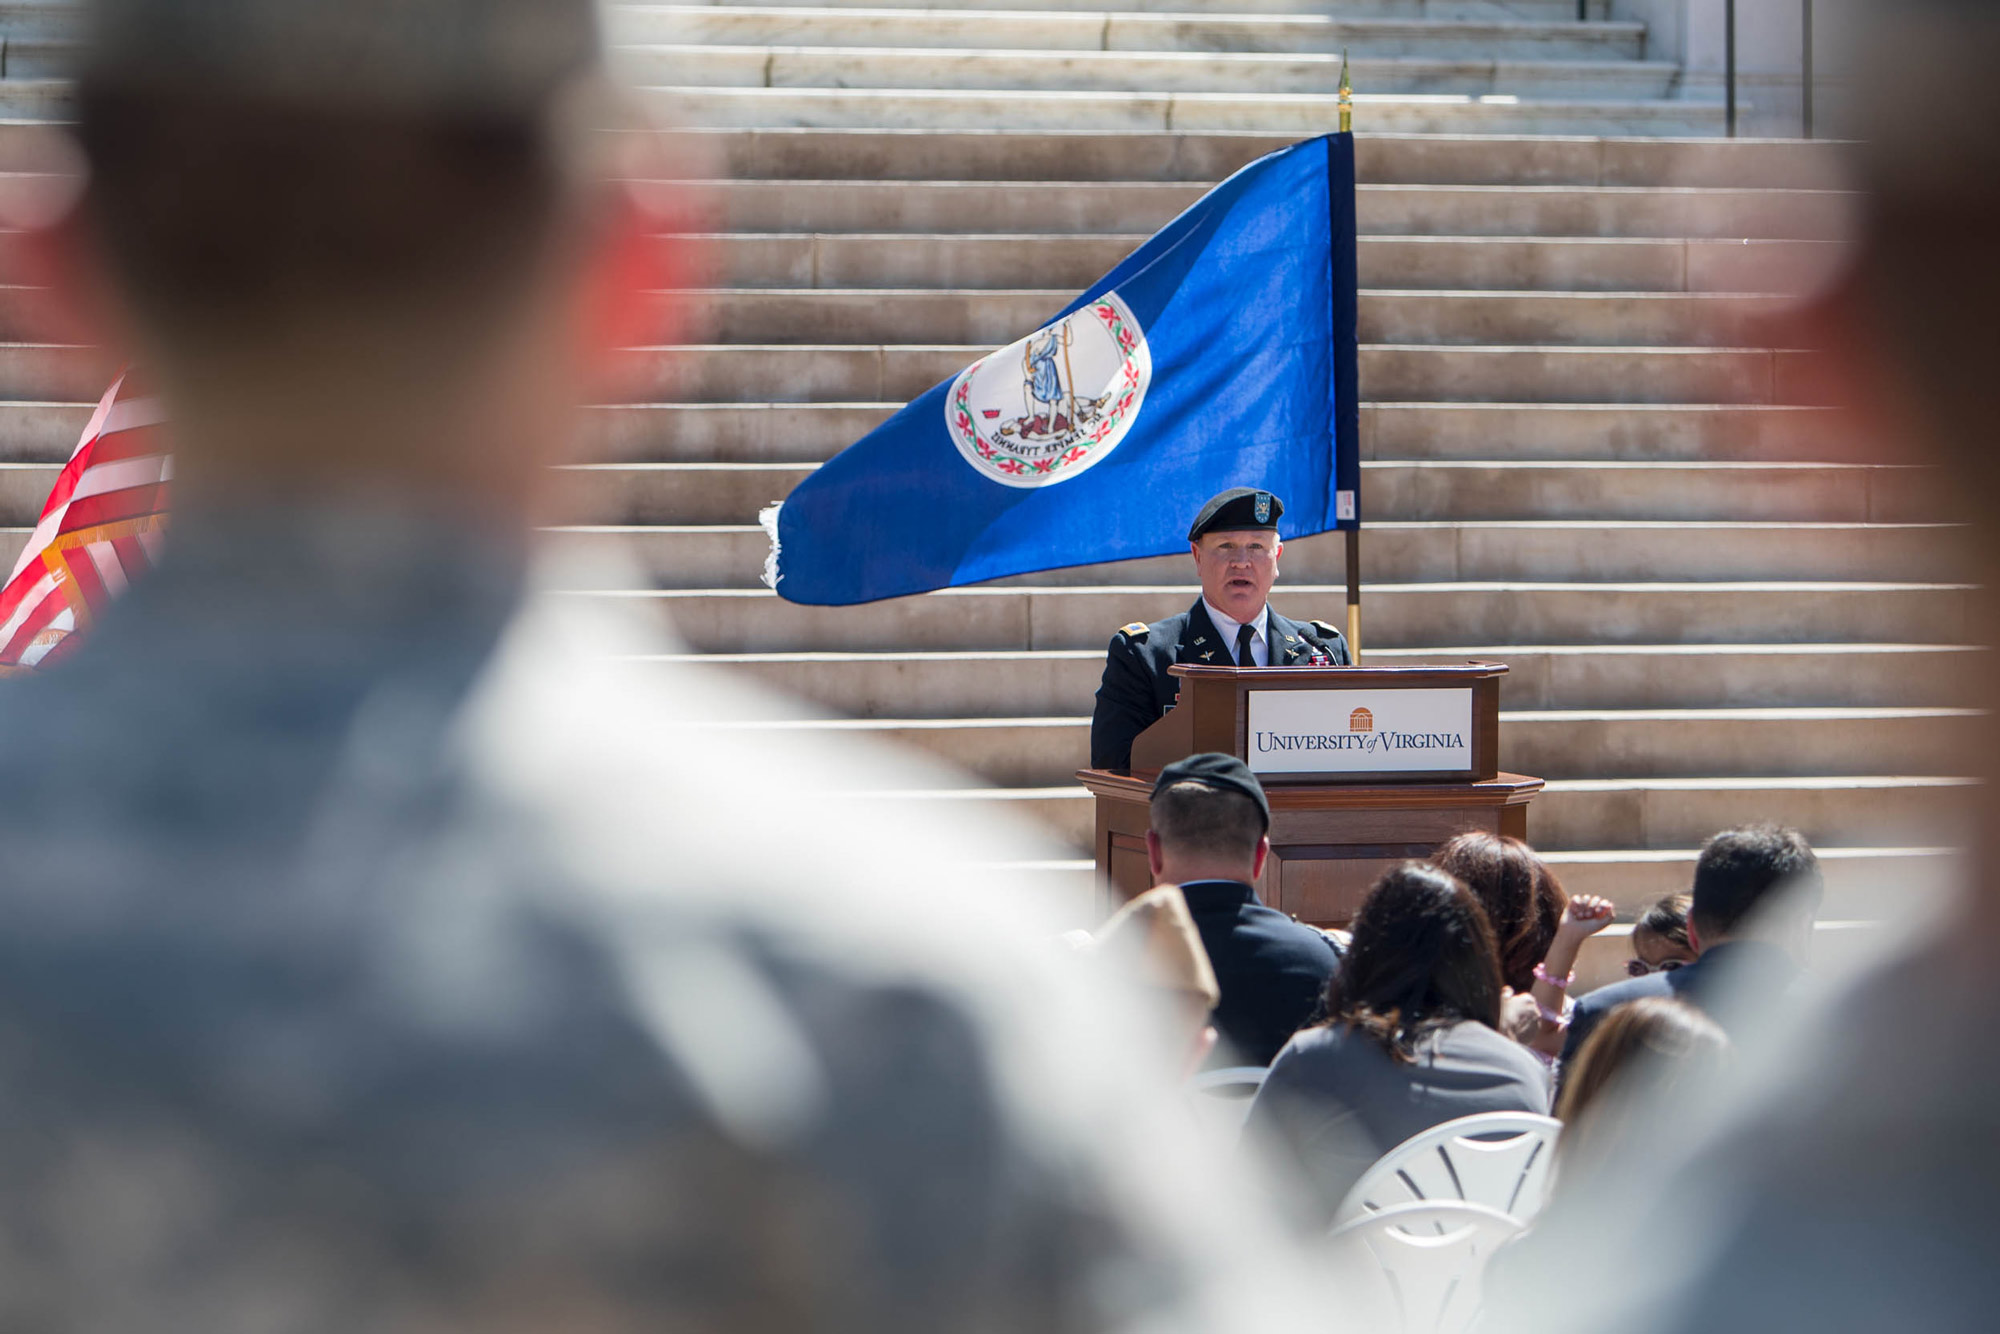 Former Col. Robert E. McMillin II, a 1984 UVA history graduate and a member of the Army ROTC program, spoke about Capt. Khan.